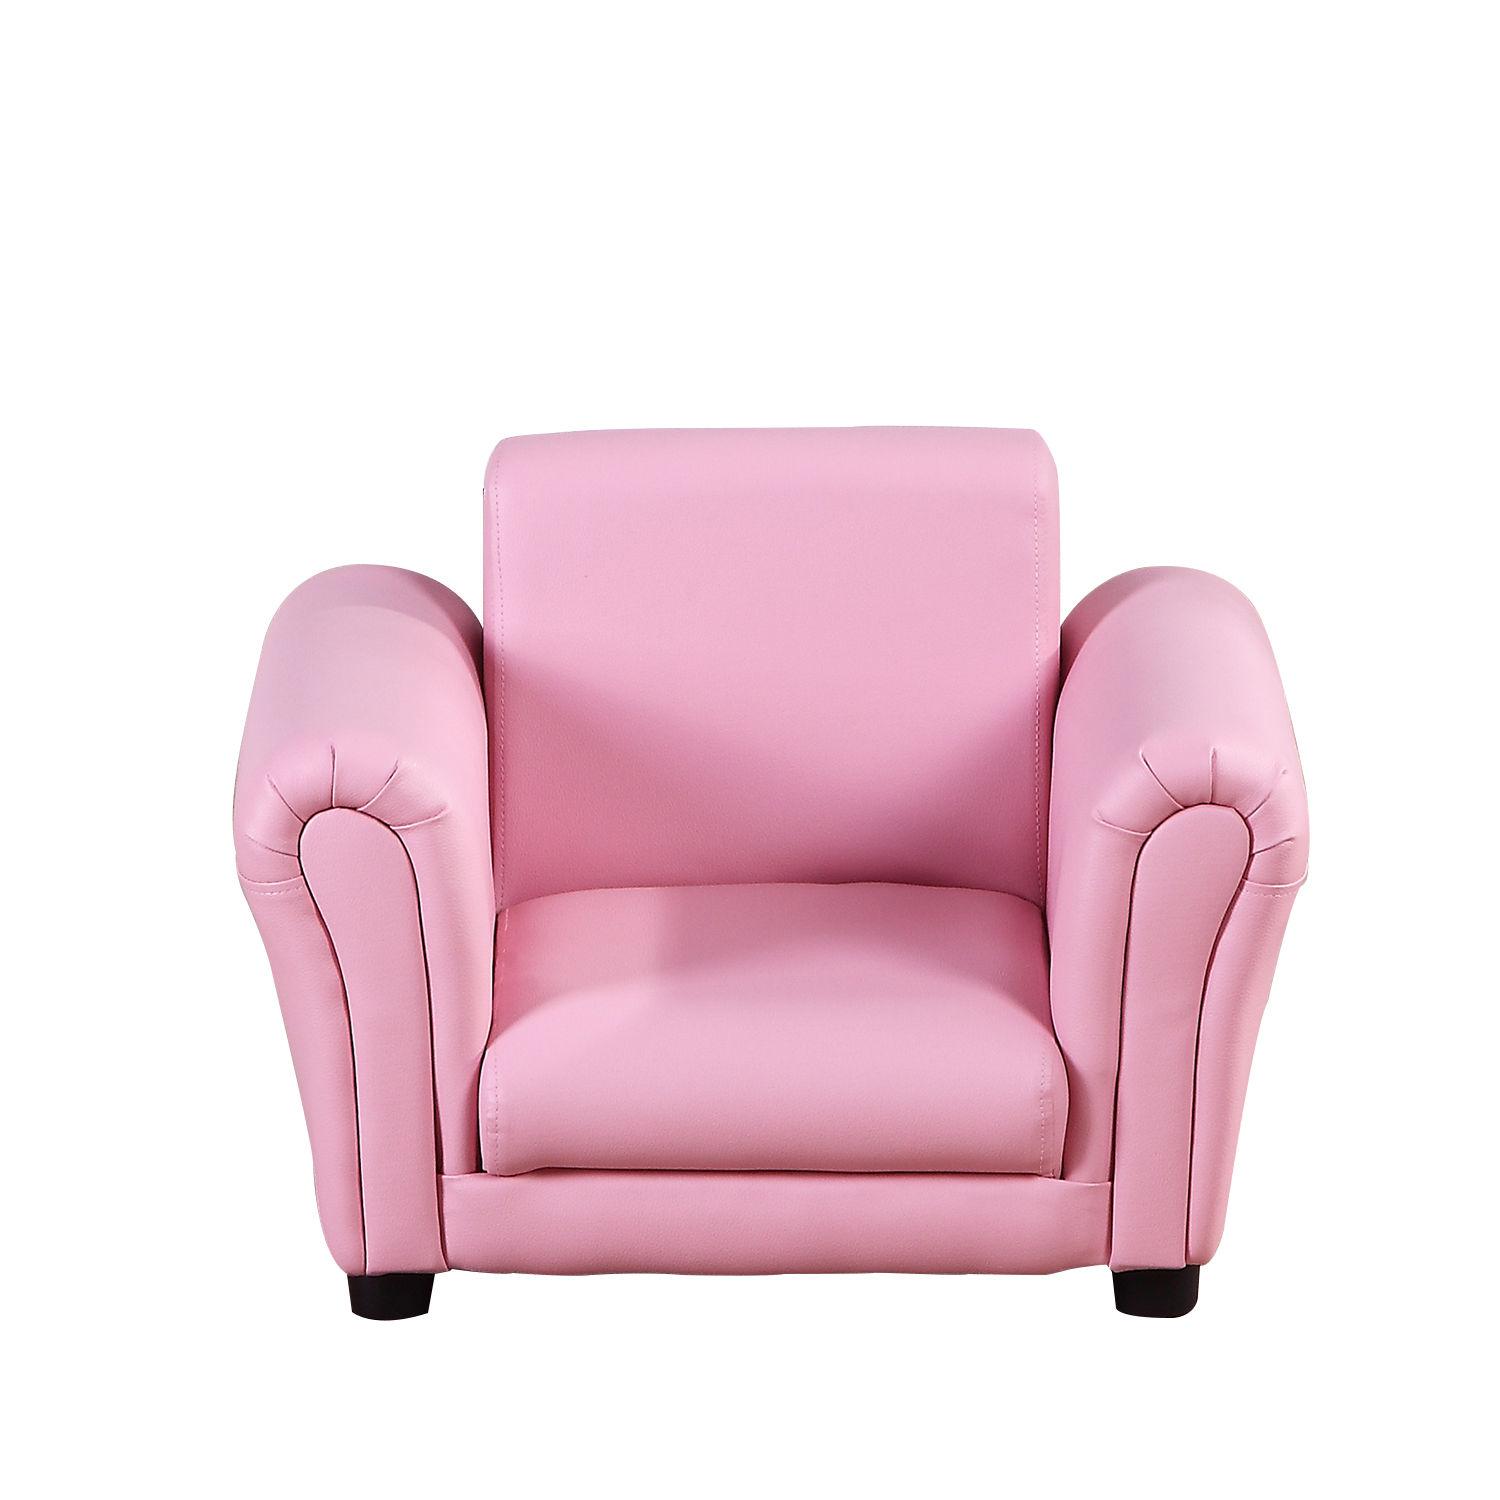 Kids-Sofa-Children-Chair-Seat-Armchair-W-Footstool-Playroom-Bedroom-Black-Pink thumbnail 14